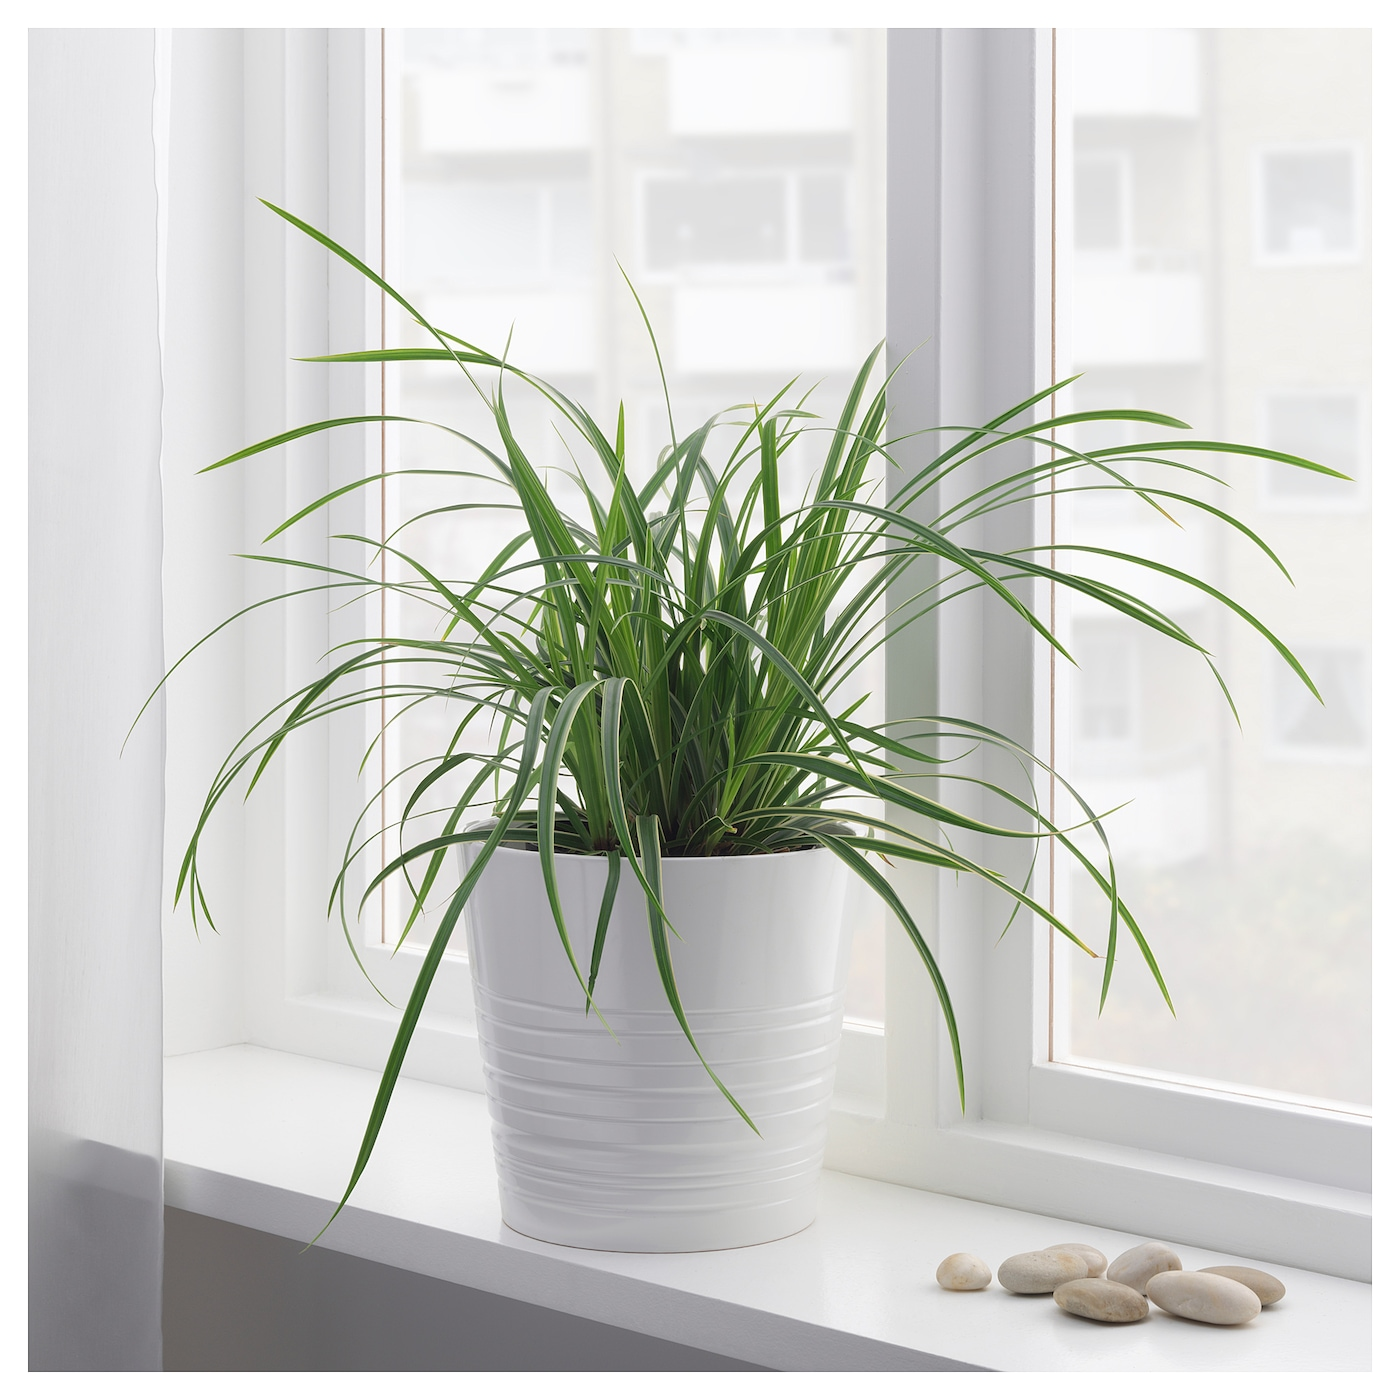 IKEA CAREX potted plant Decorate your home with plants combined with a plant pot to suit your style.